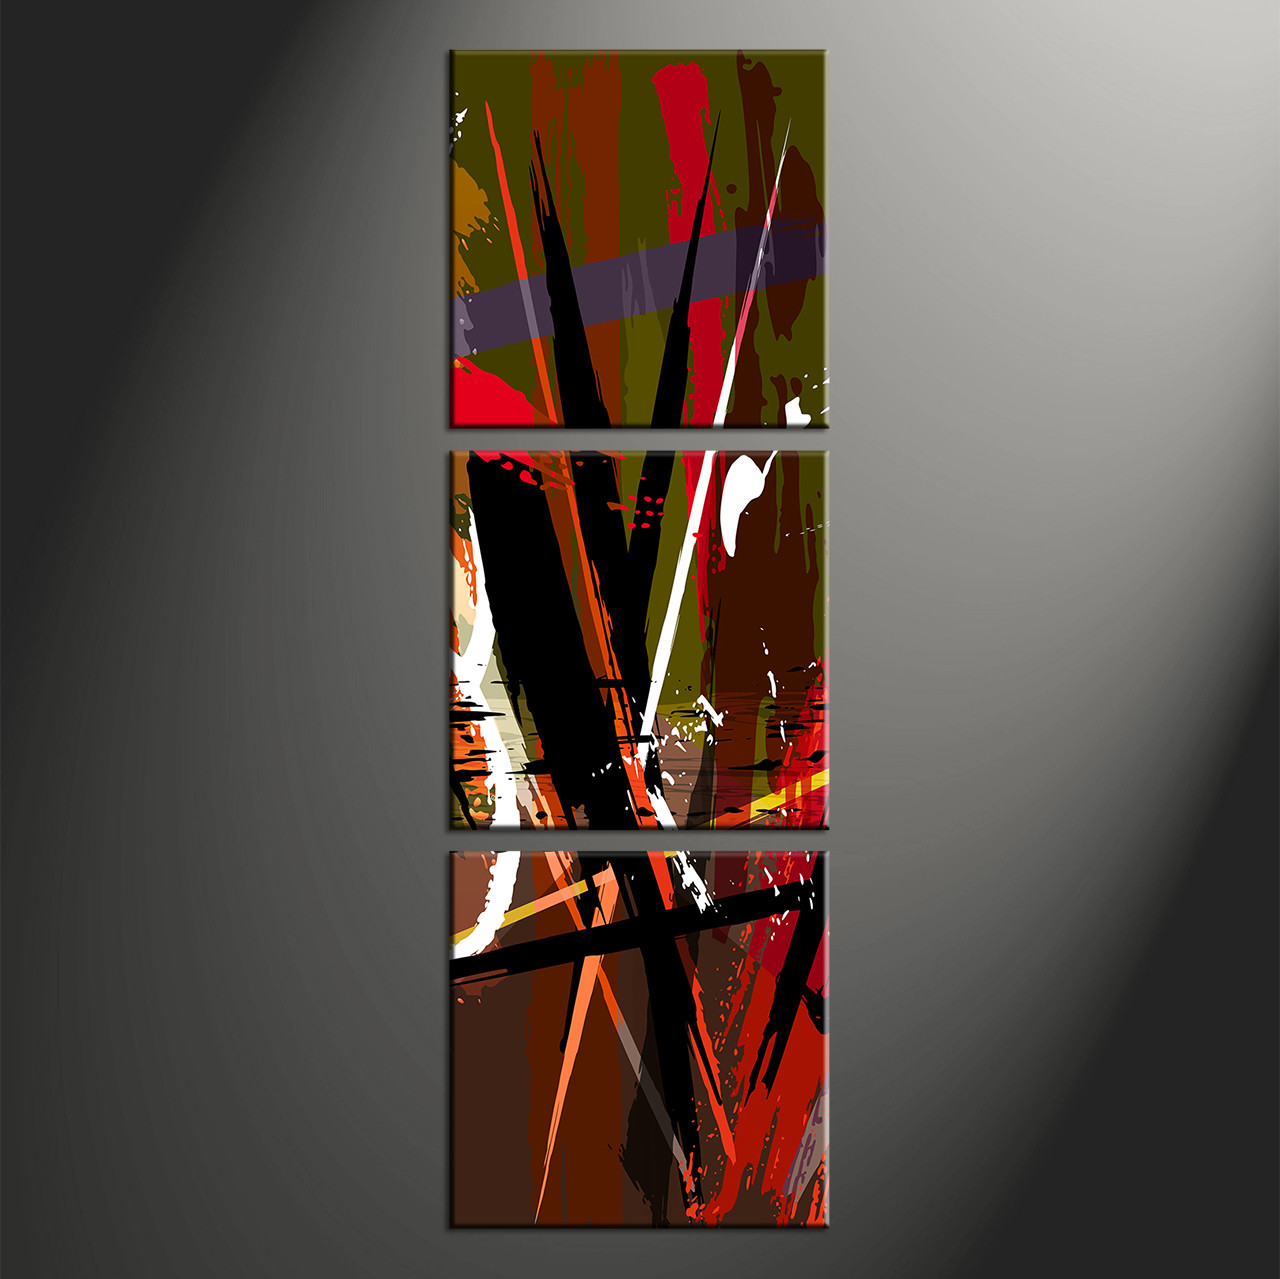 Large Vertical Paintings 3 Piece Canvas Home Decor Abstract Colorful Decor